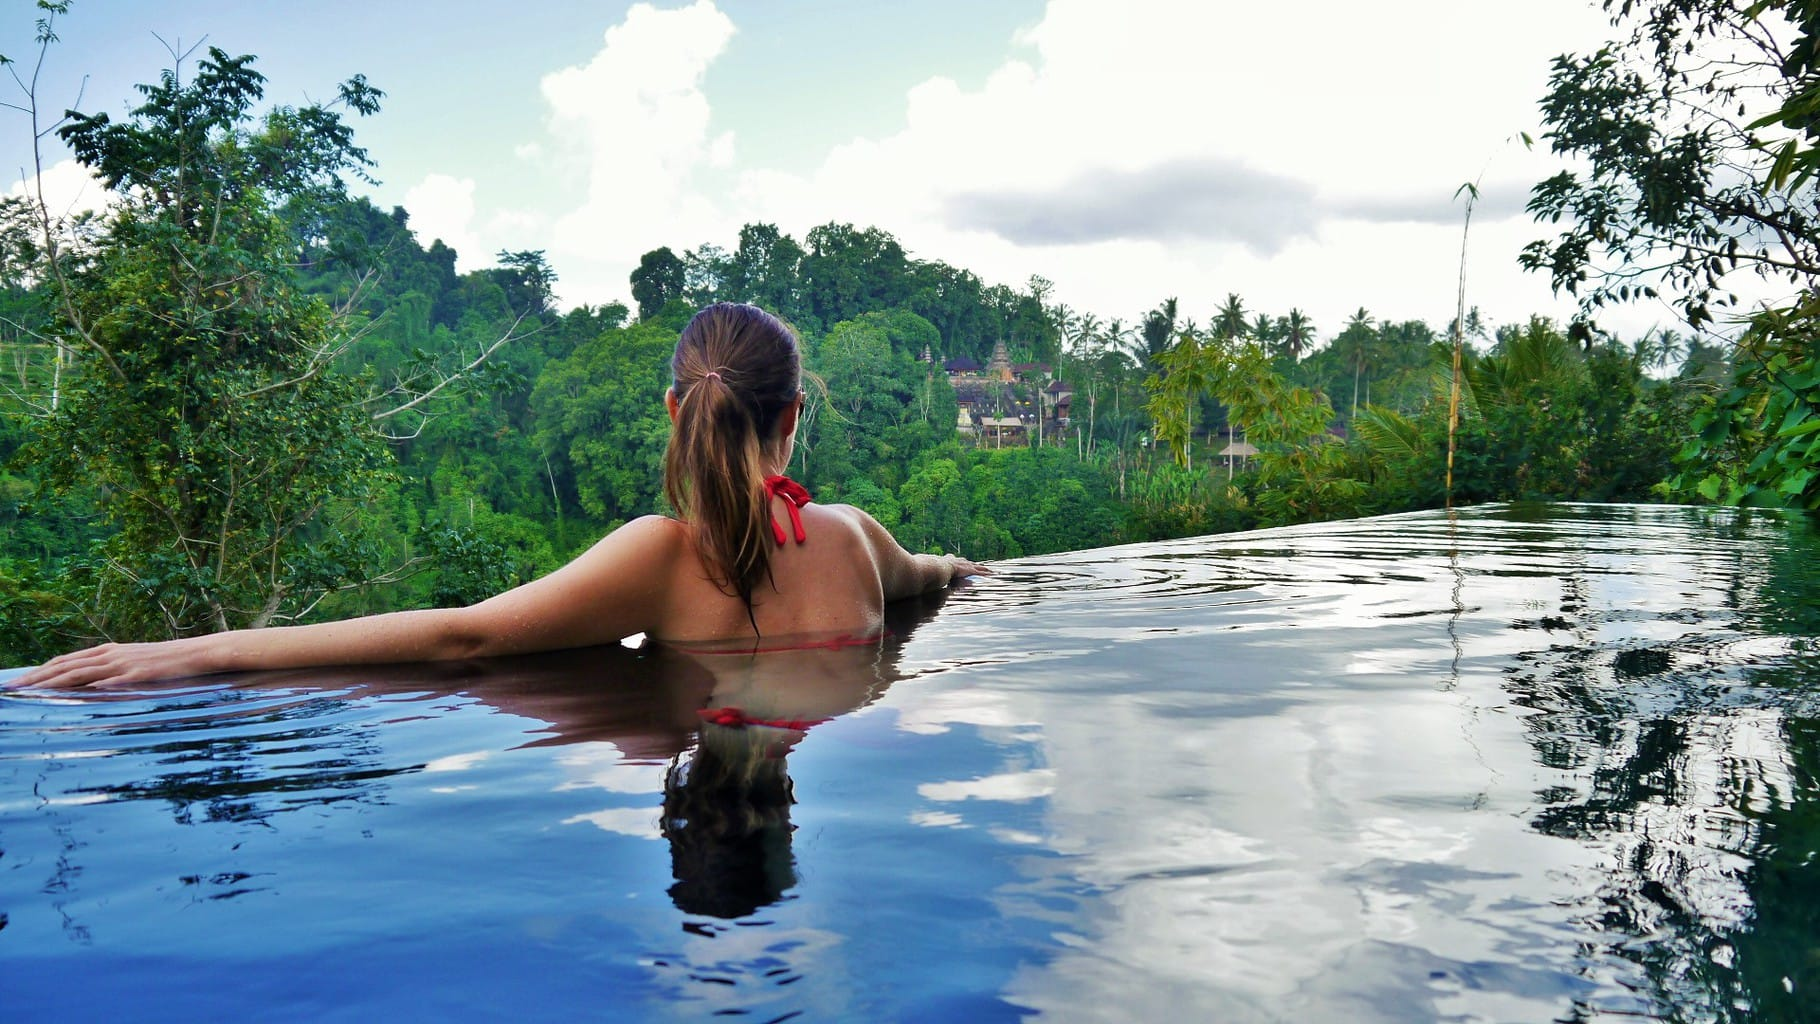 Hanging Gardens Review An Iconic Infinty Pool Perched On